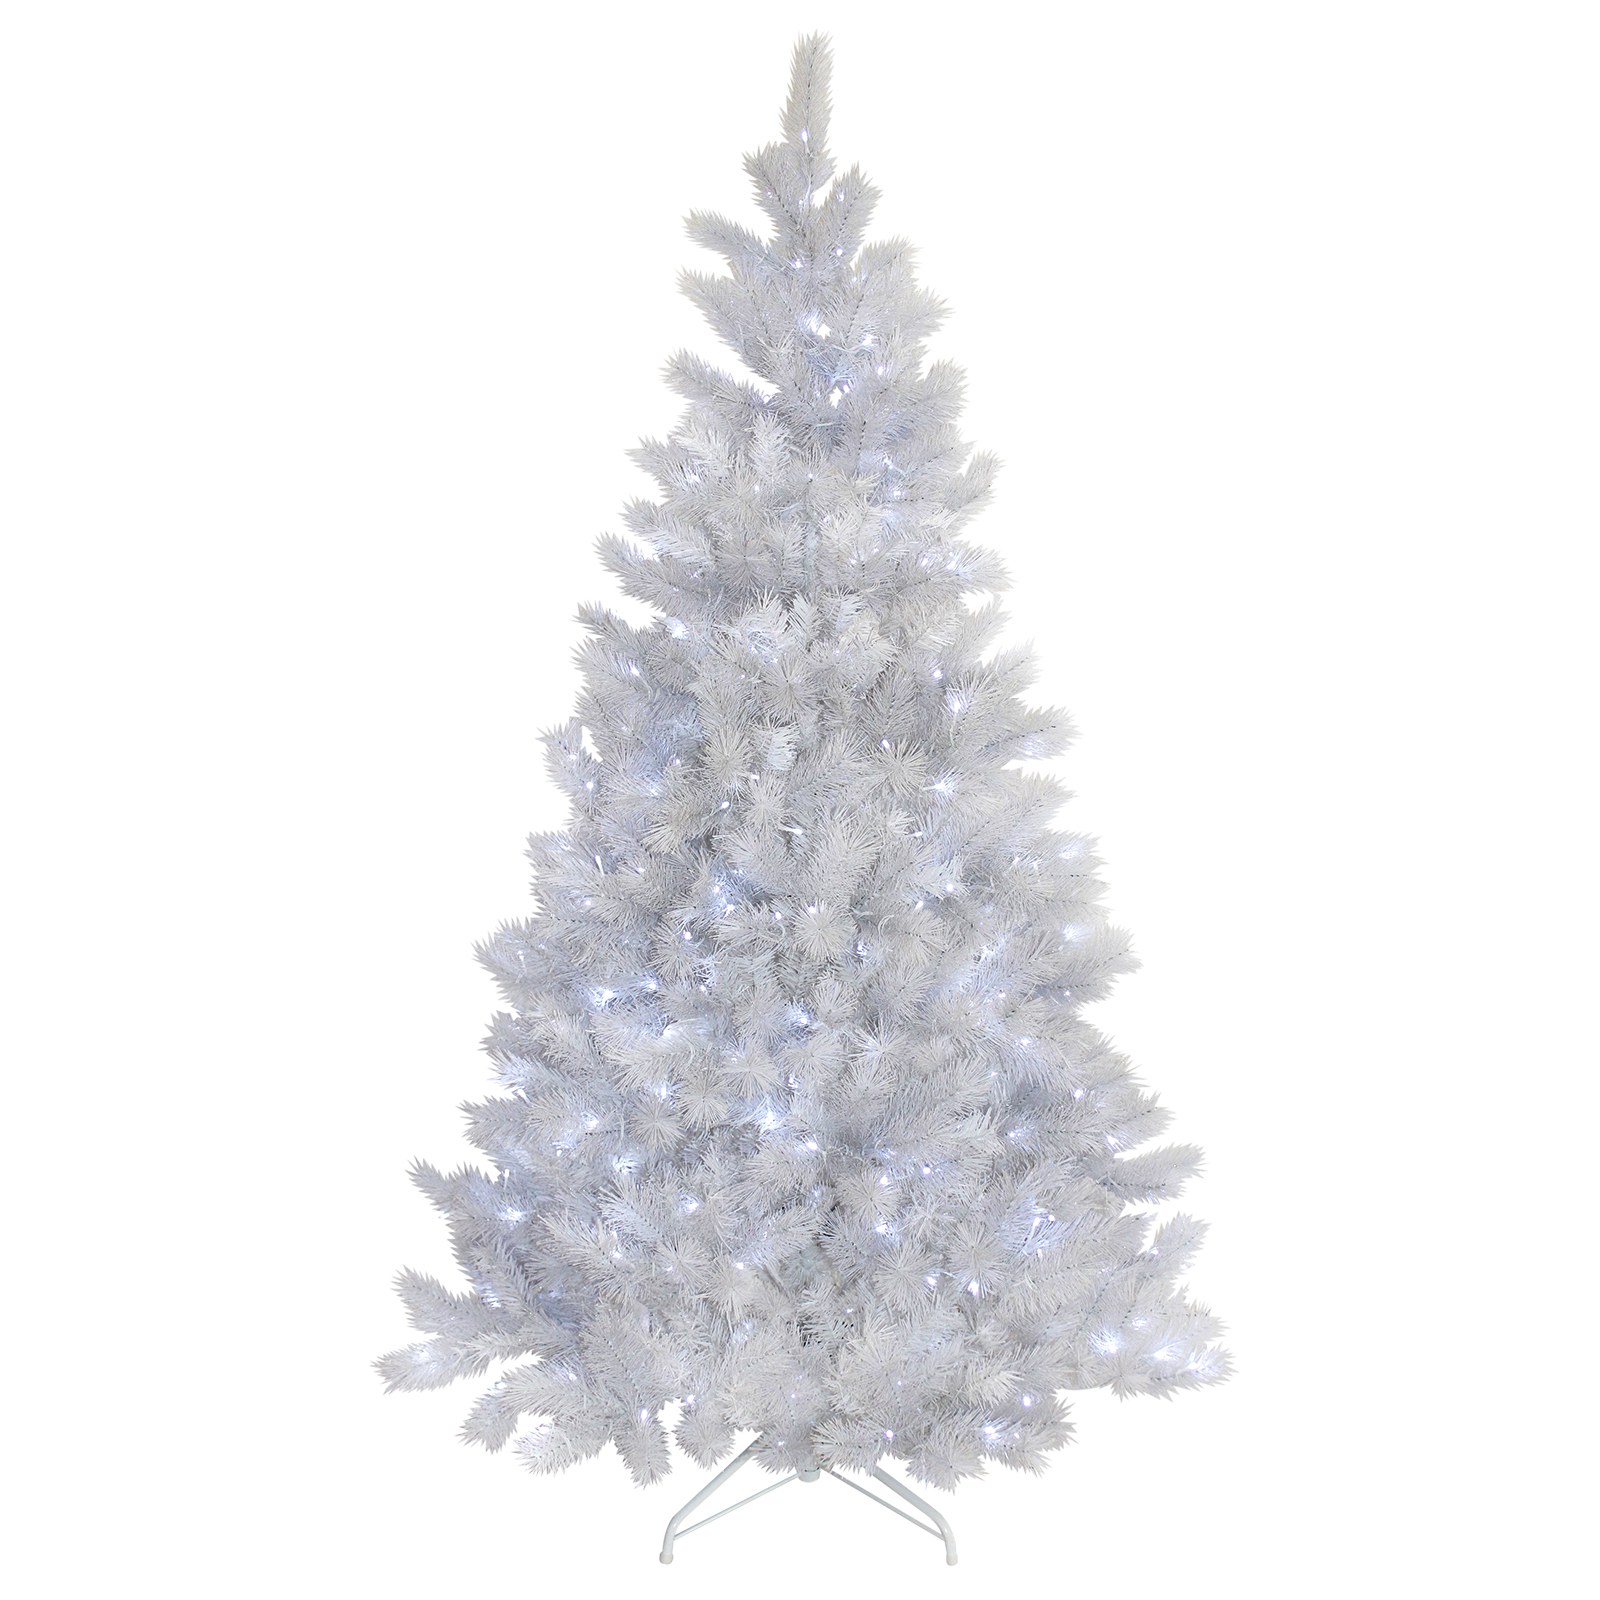 5ft 6ft 7ft white glitter pine artificial pre lit led lights white christmas tree with ornaments